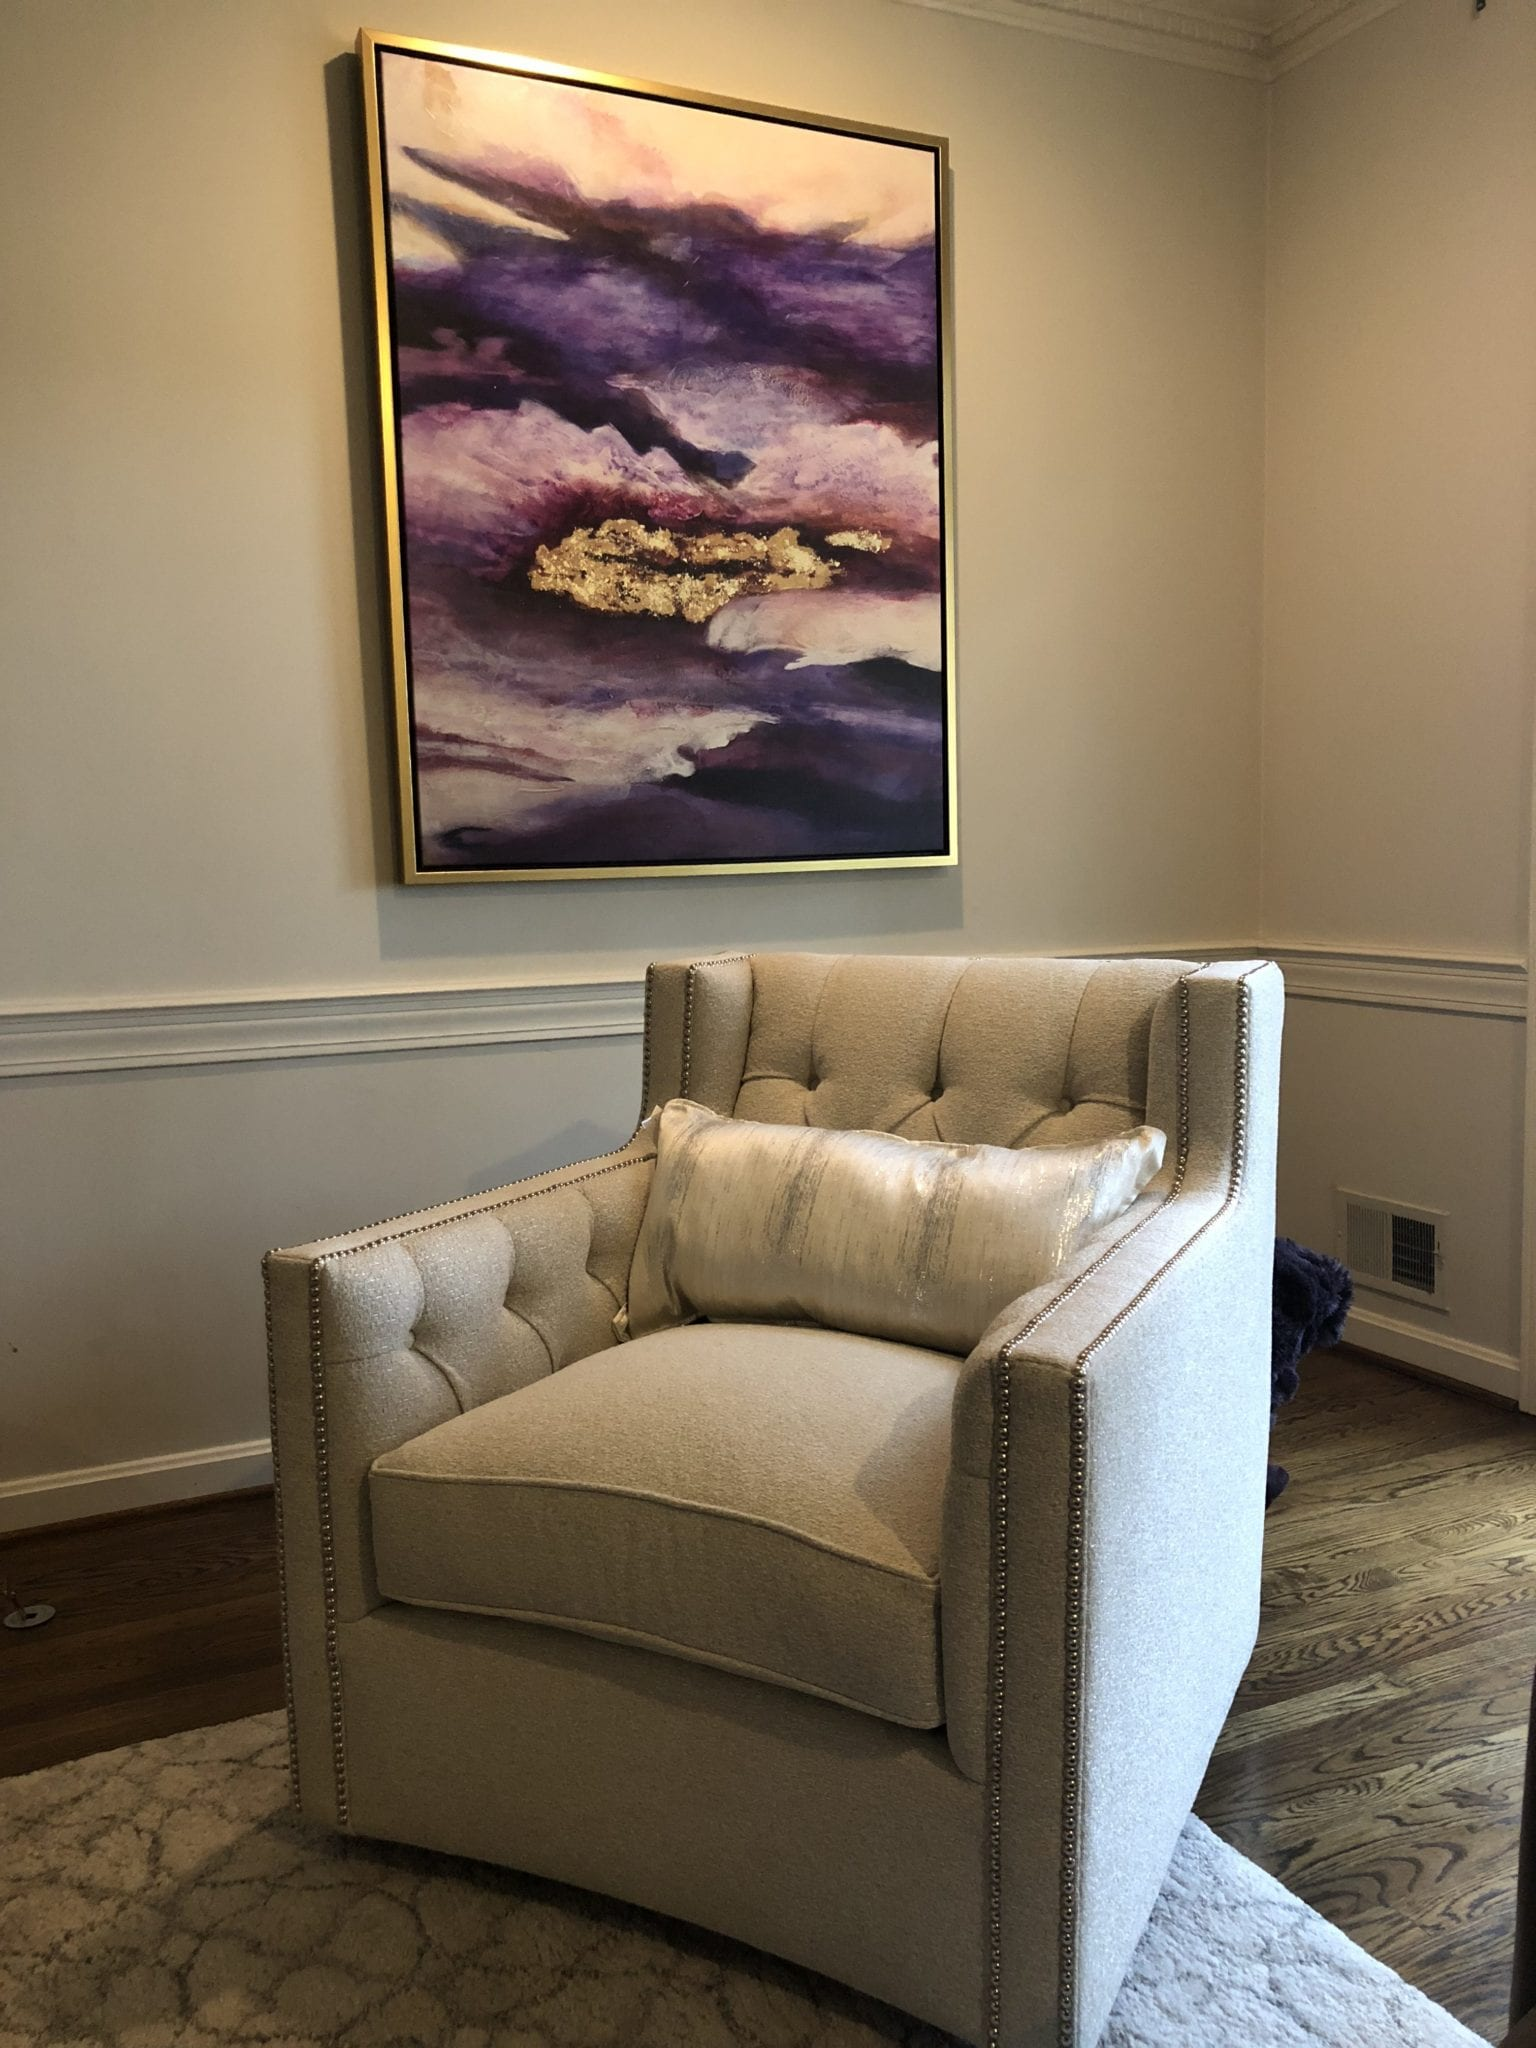 Cushioned sitting chair in front of artwork